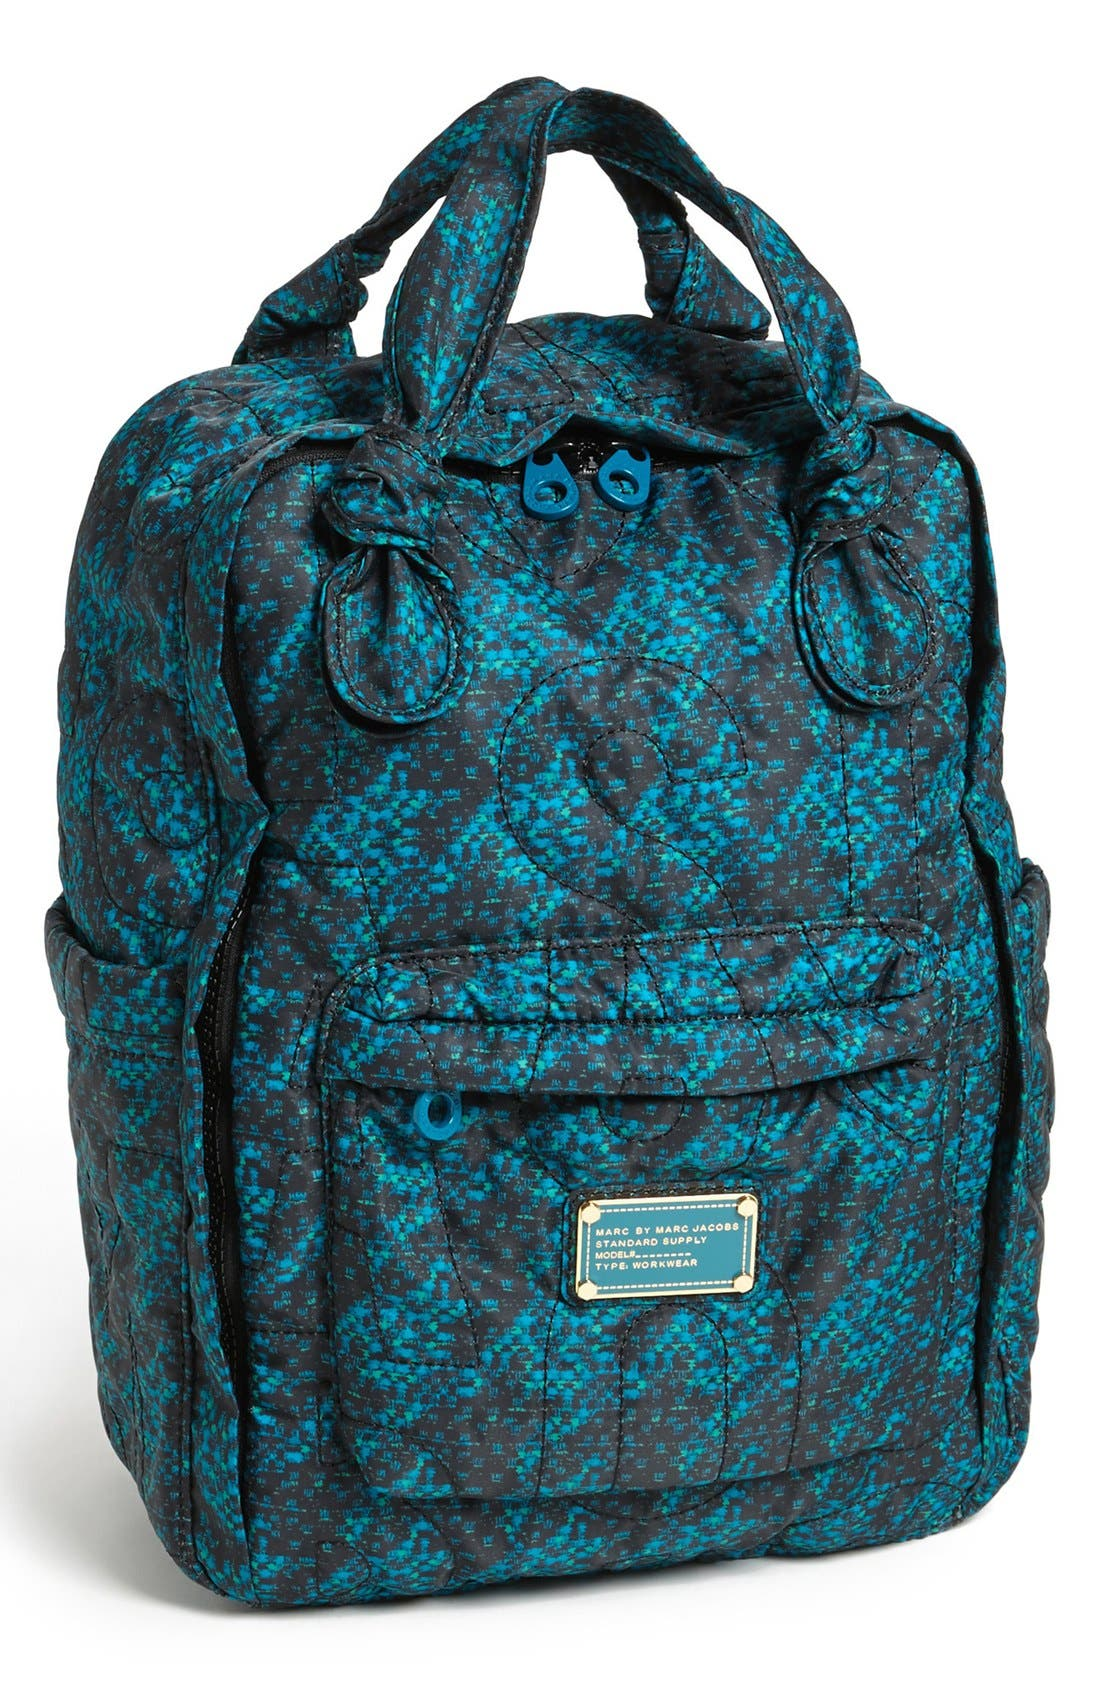 Alternate Image 1 Selected - MARC BY MARC JACOBS 'Terrance' Jacquard Print Knapsack